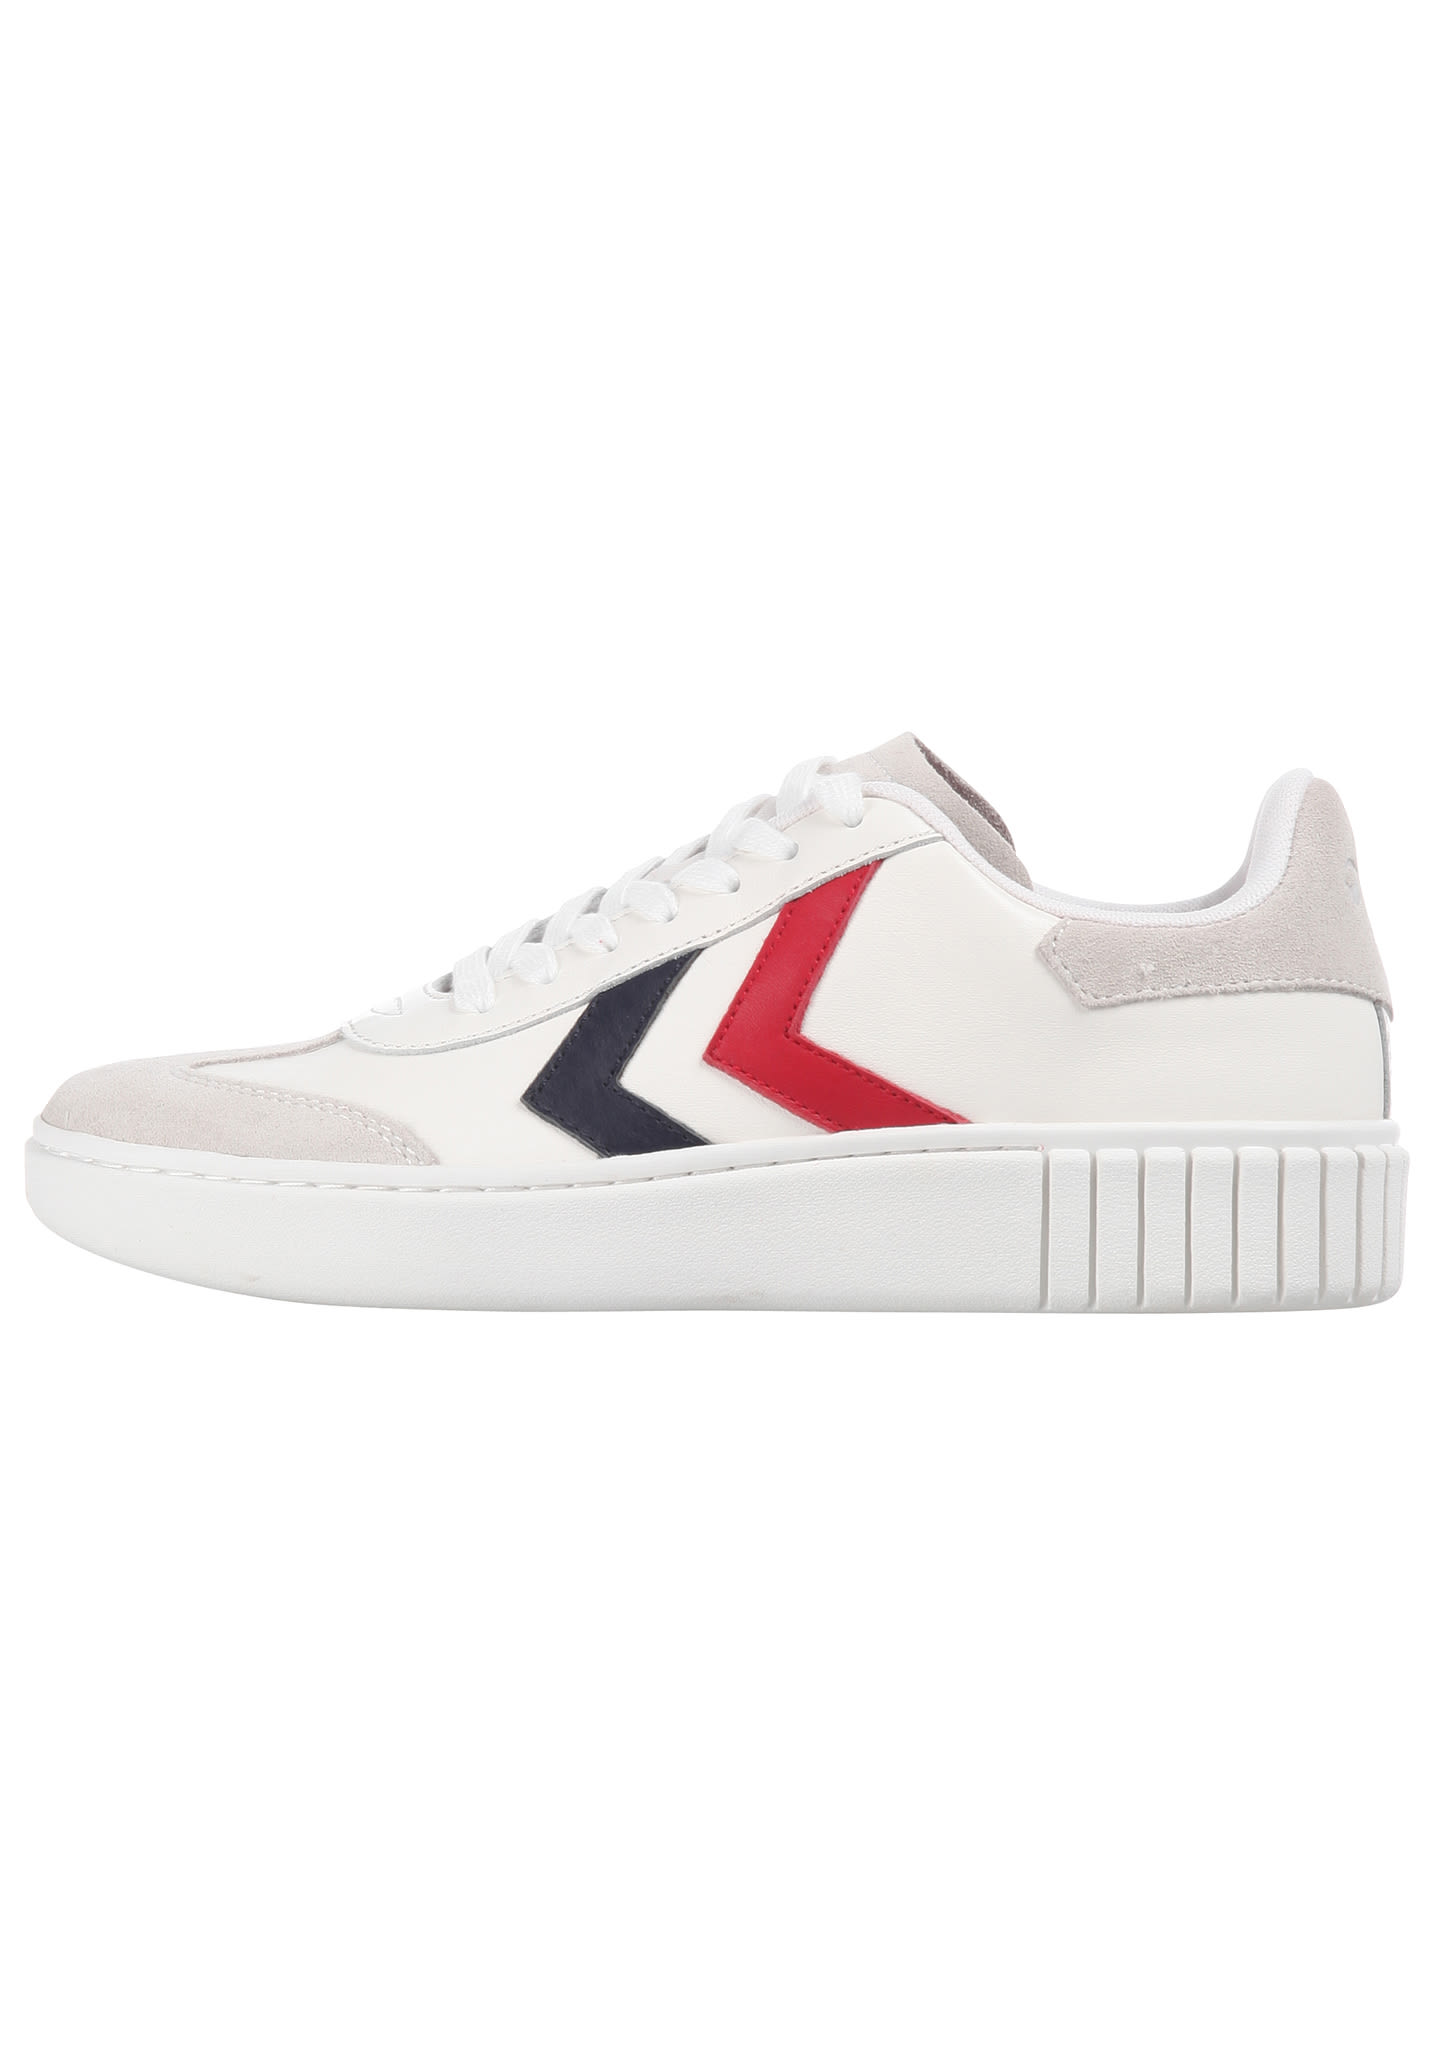 Hummel Women's Aarhus Classic Low-Top Sneakers